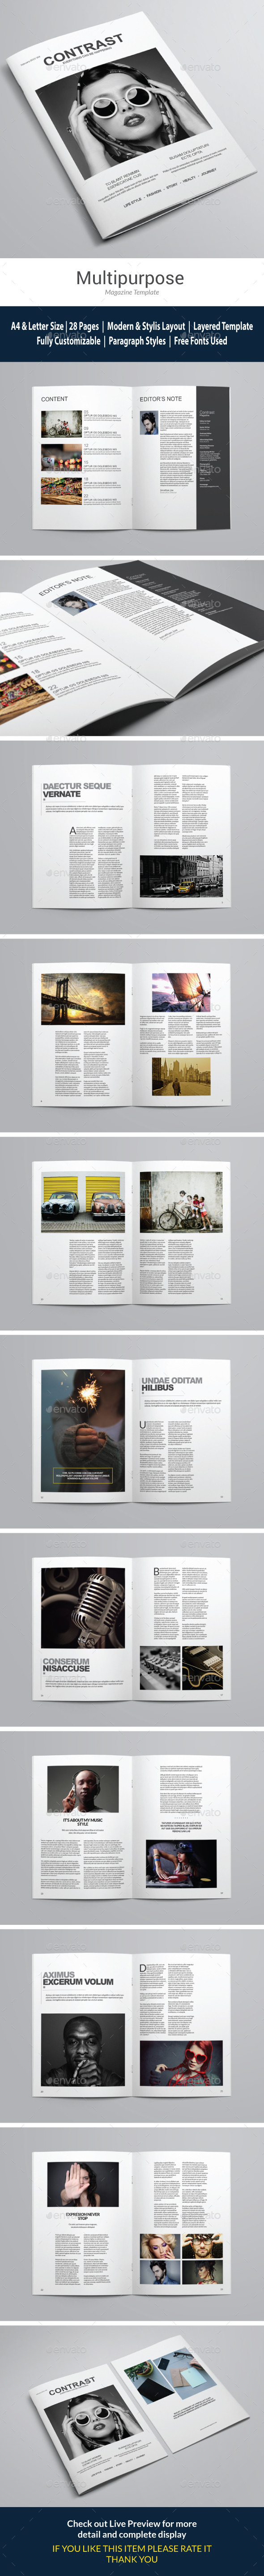 Indesign Clean Magazine vol 1 - Magazines Print Templates